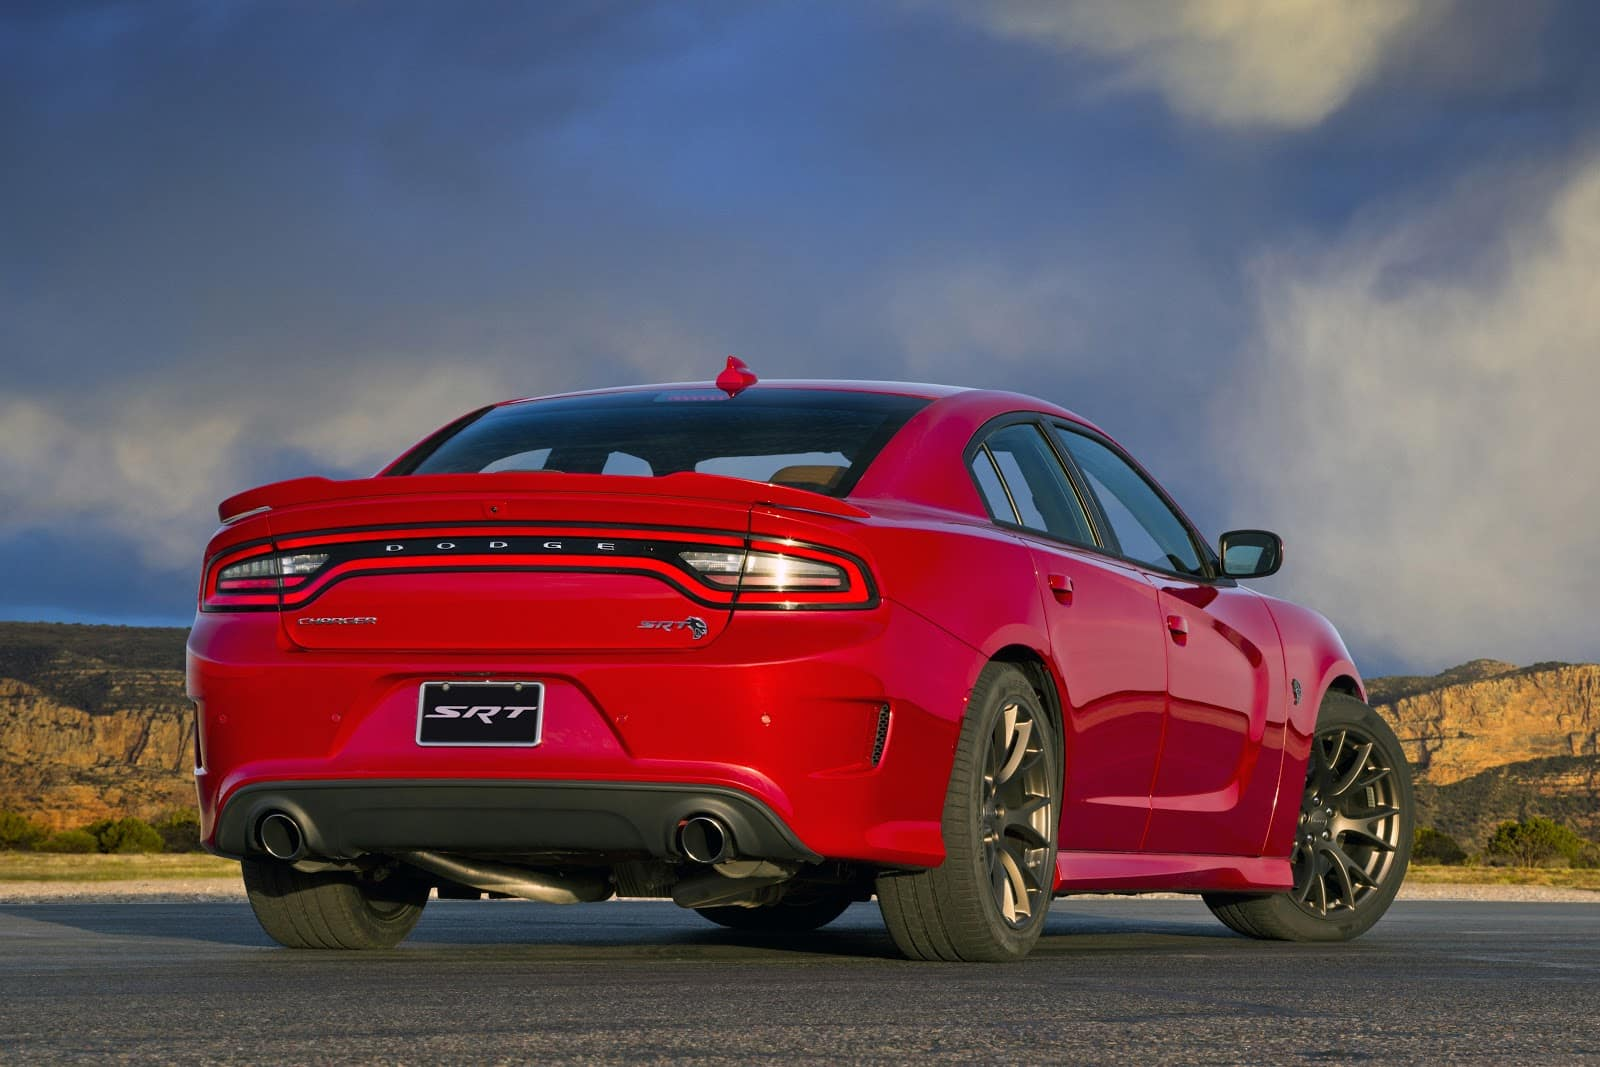 Red 2019 dodge charger SRT with bumper facing user with mountains and canyons in background